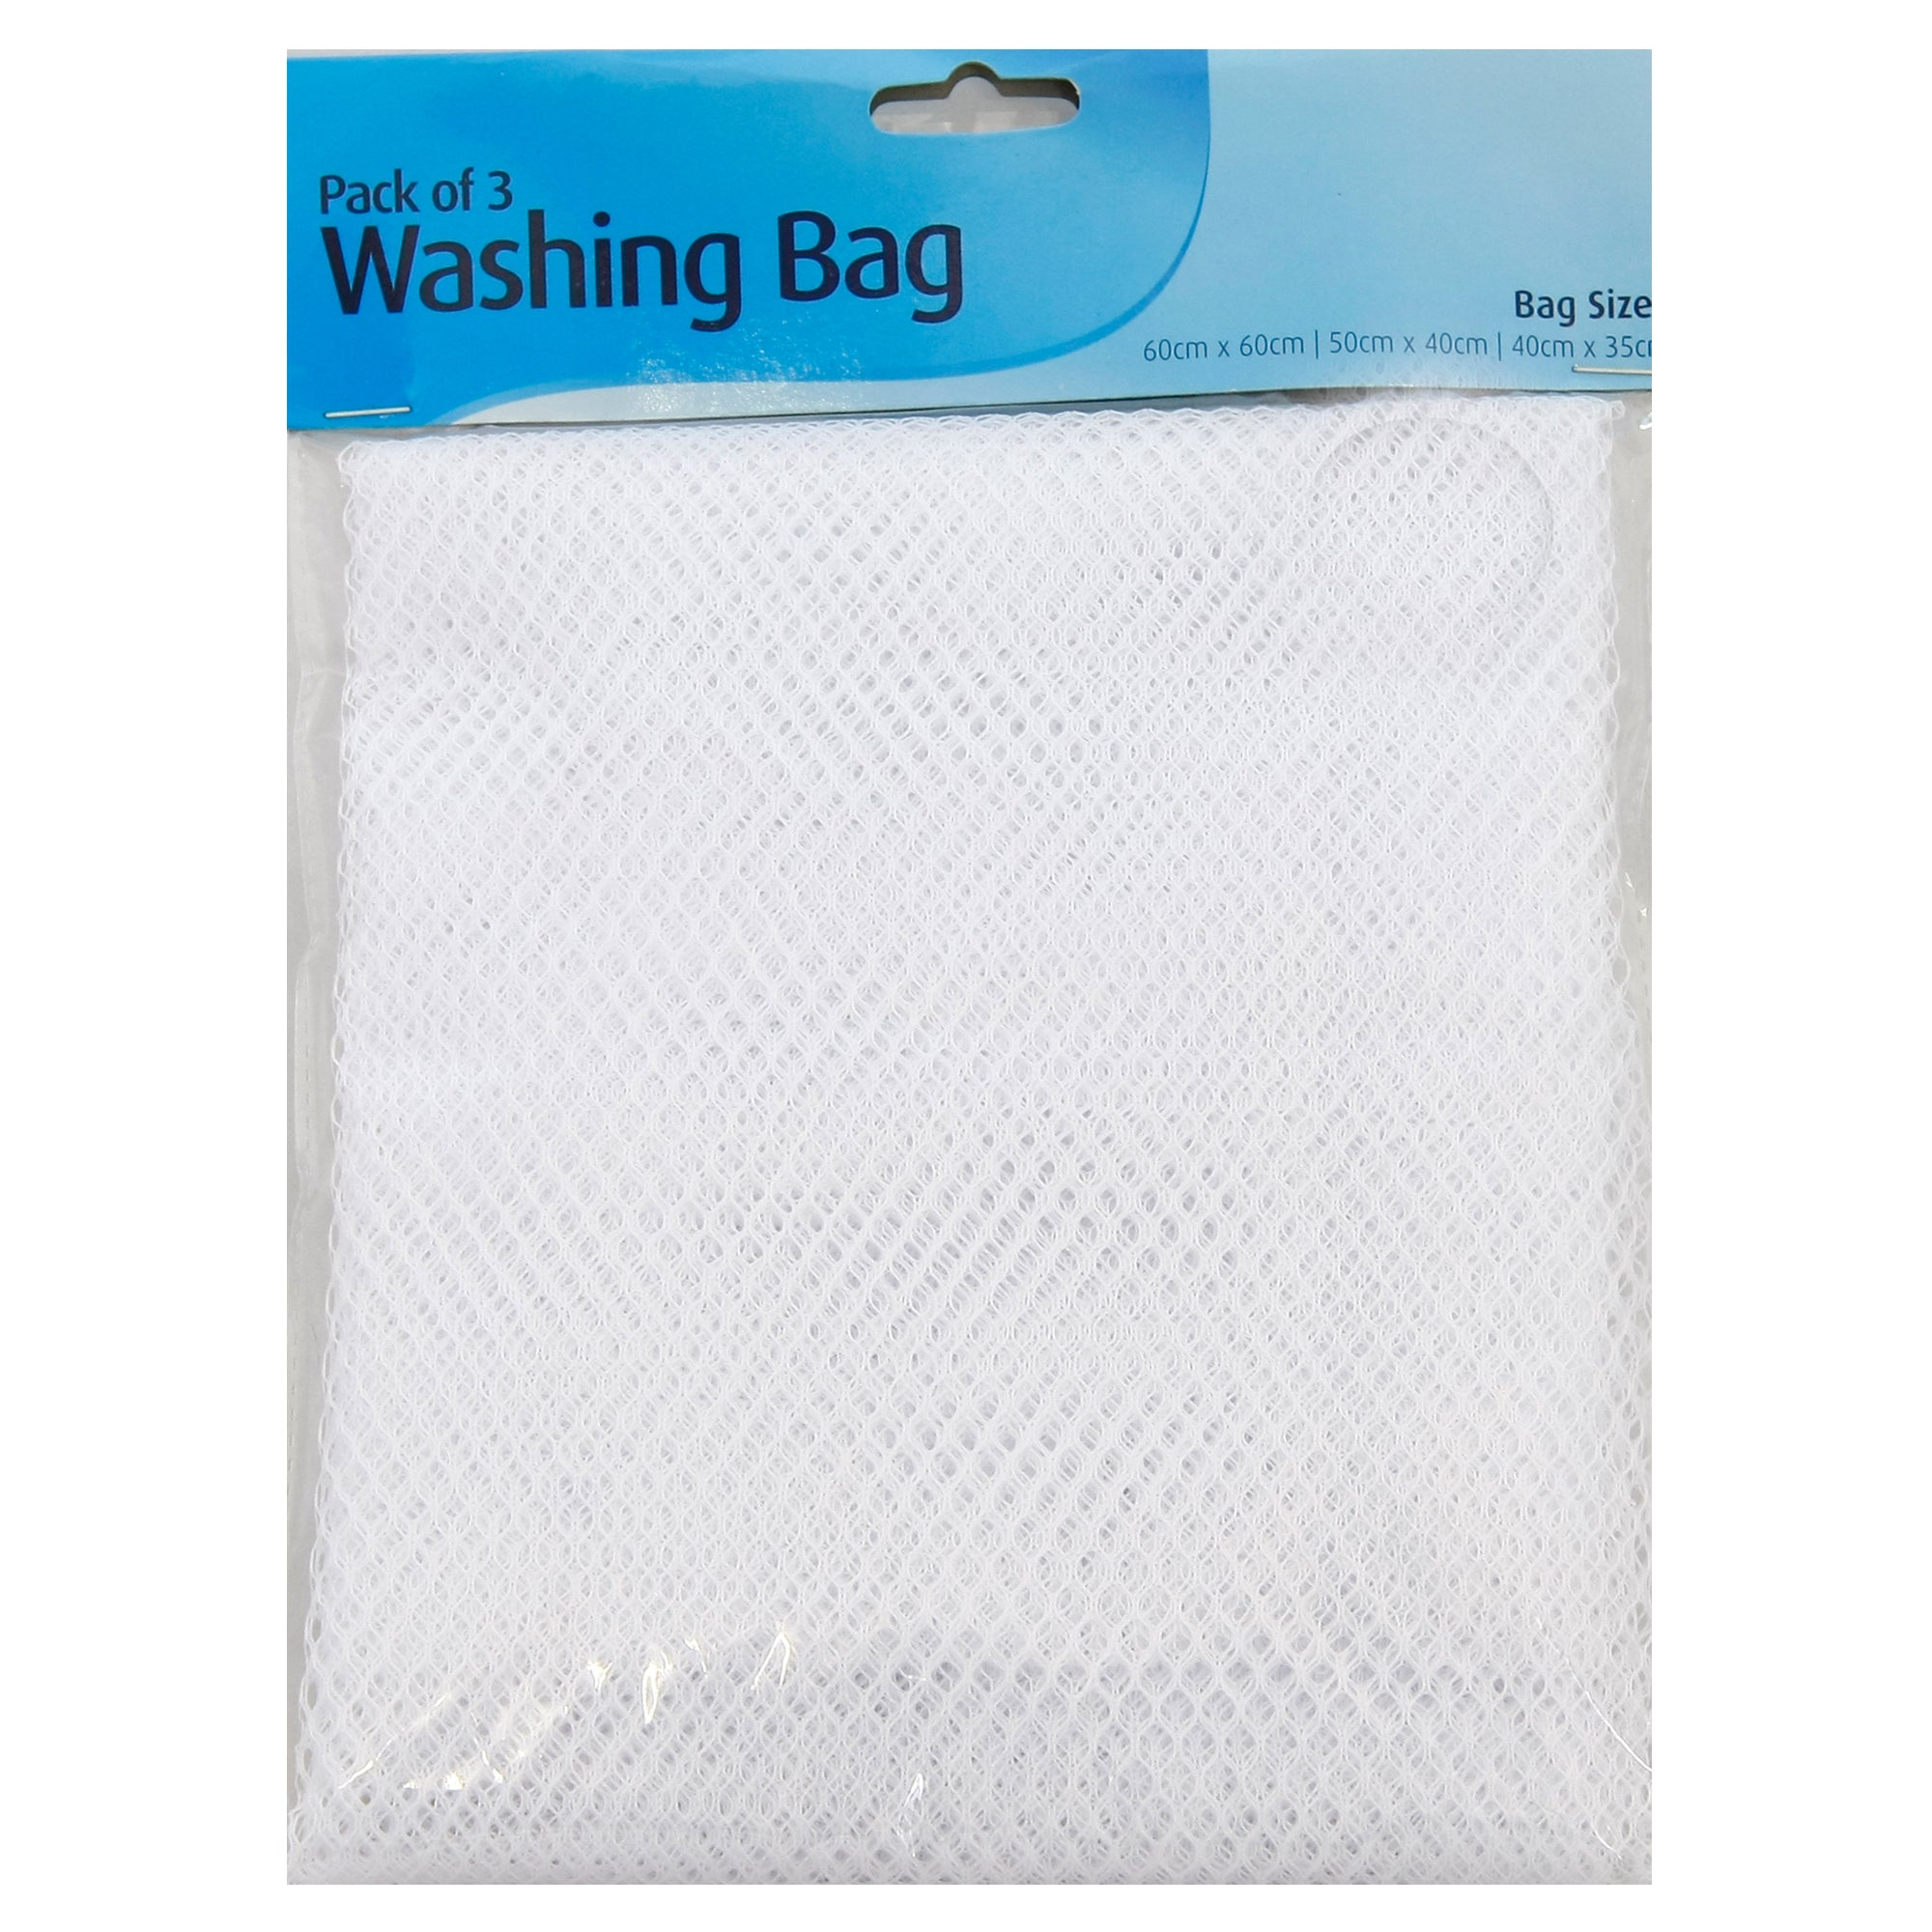 Pack of 3 Wash Bags